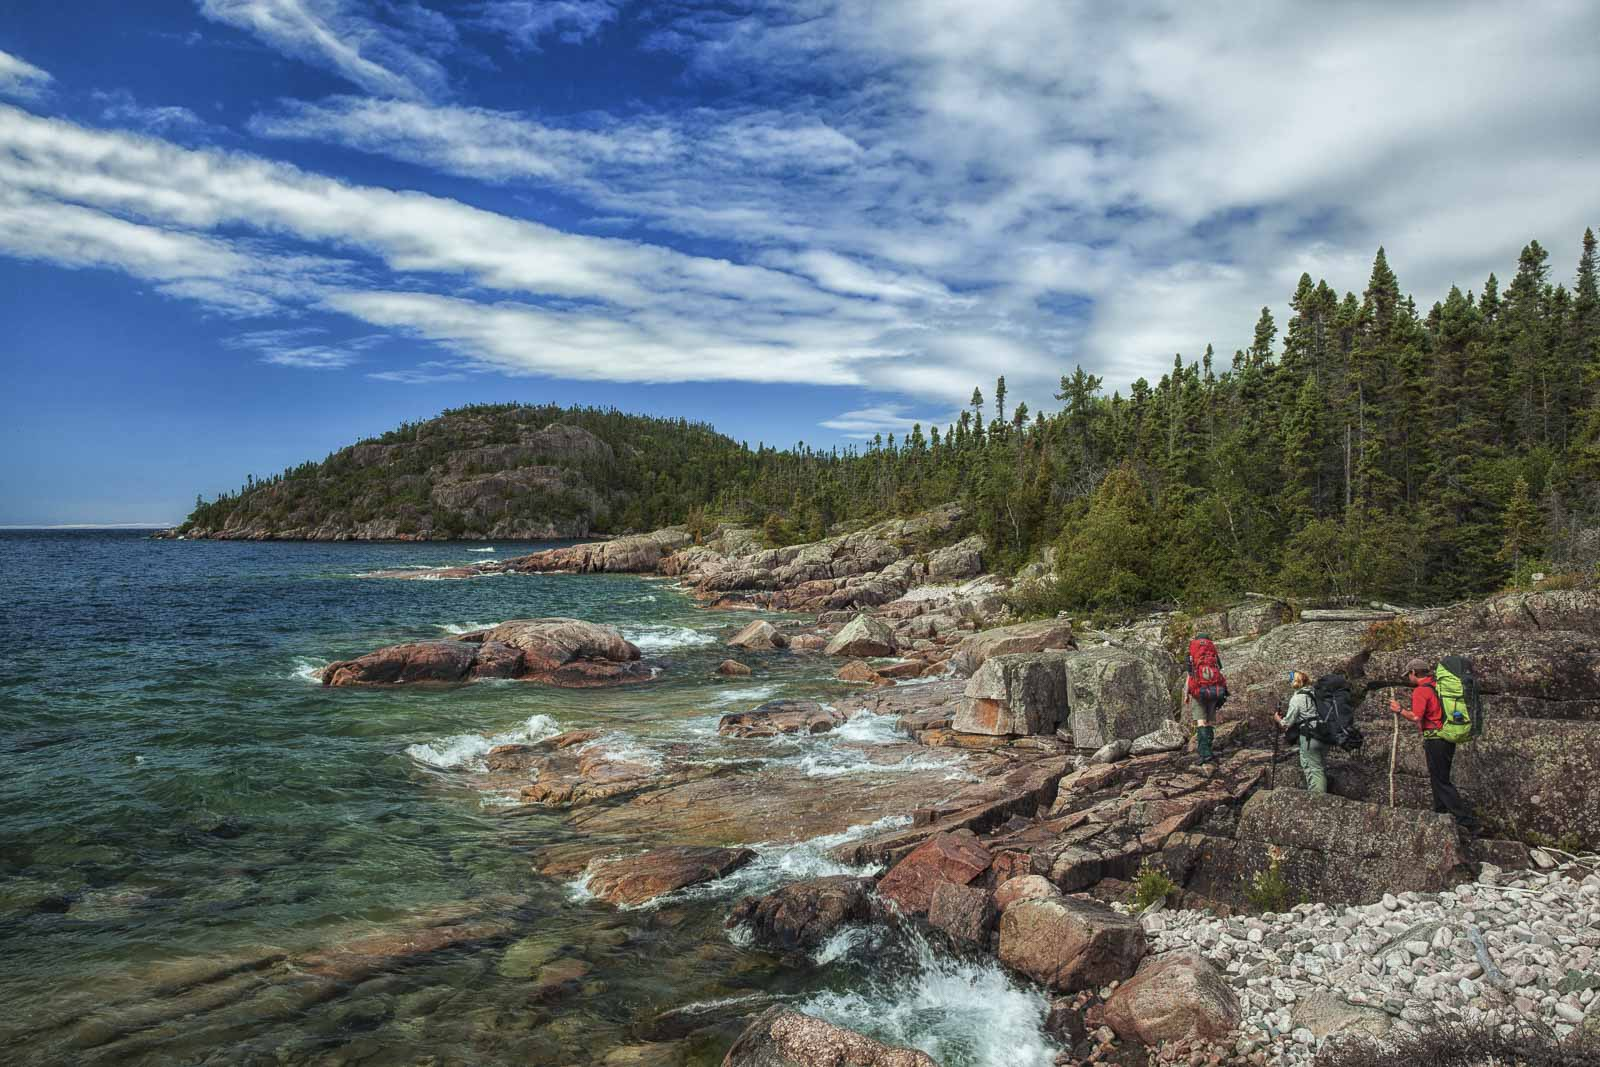 Hiking the Pukaskwa Trail in Ontario